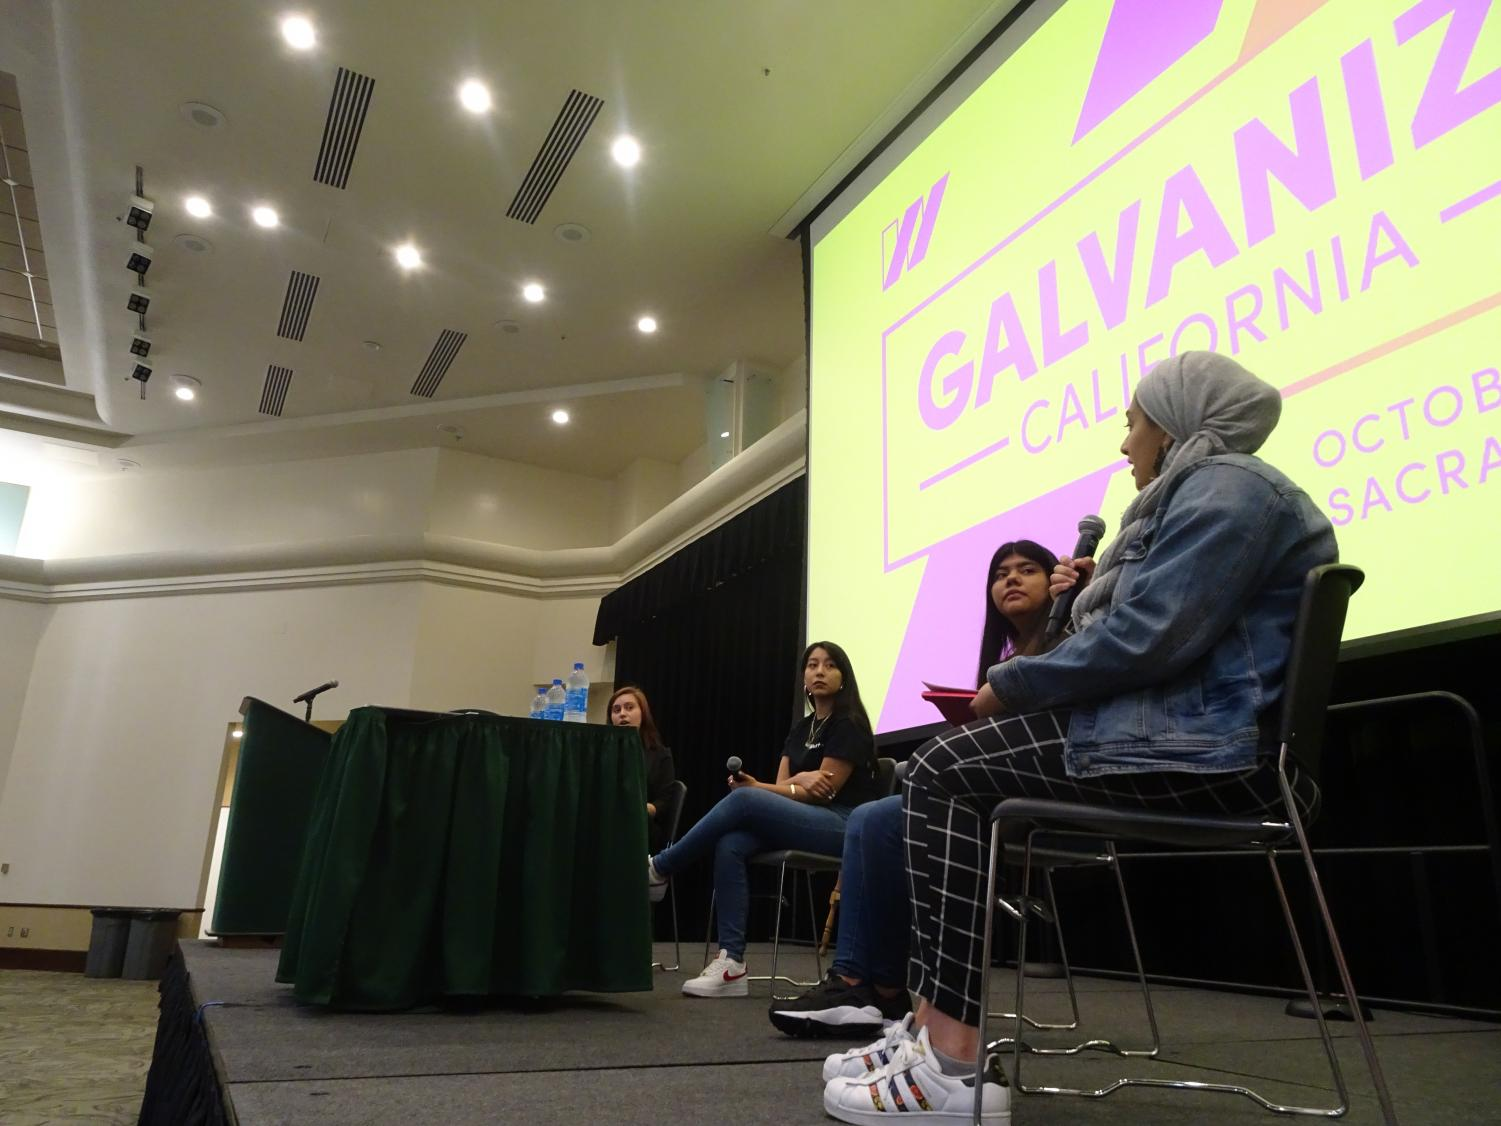 The United State of Women held Galvanize, CA at Sacramento State Saturday. The event is meant to support gender equity through coalition collaborations at the national and local level.